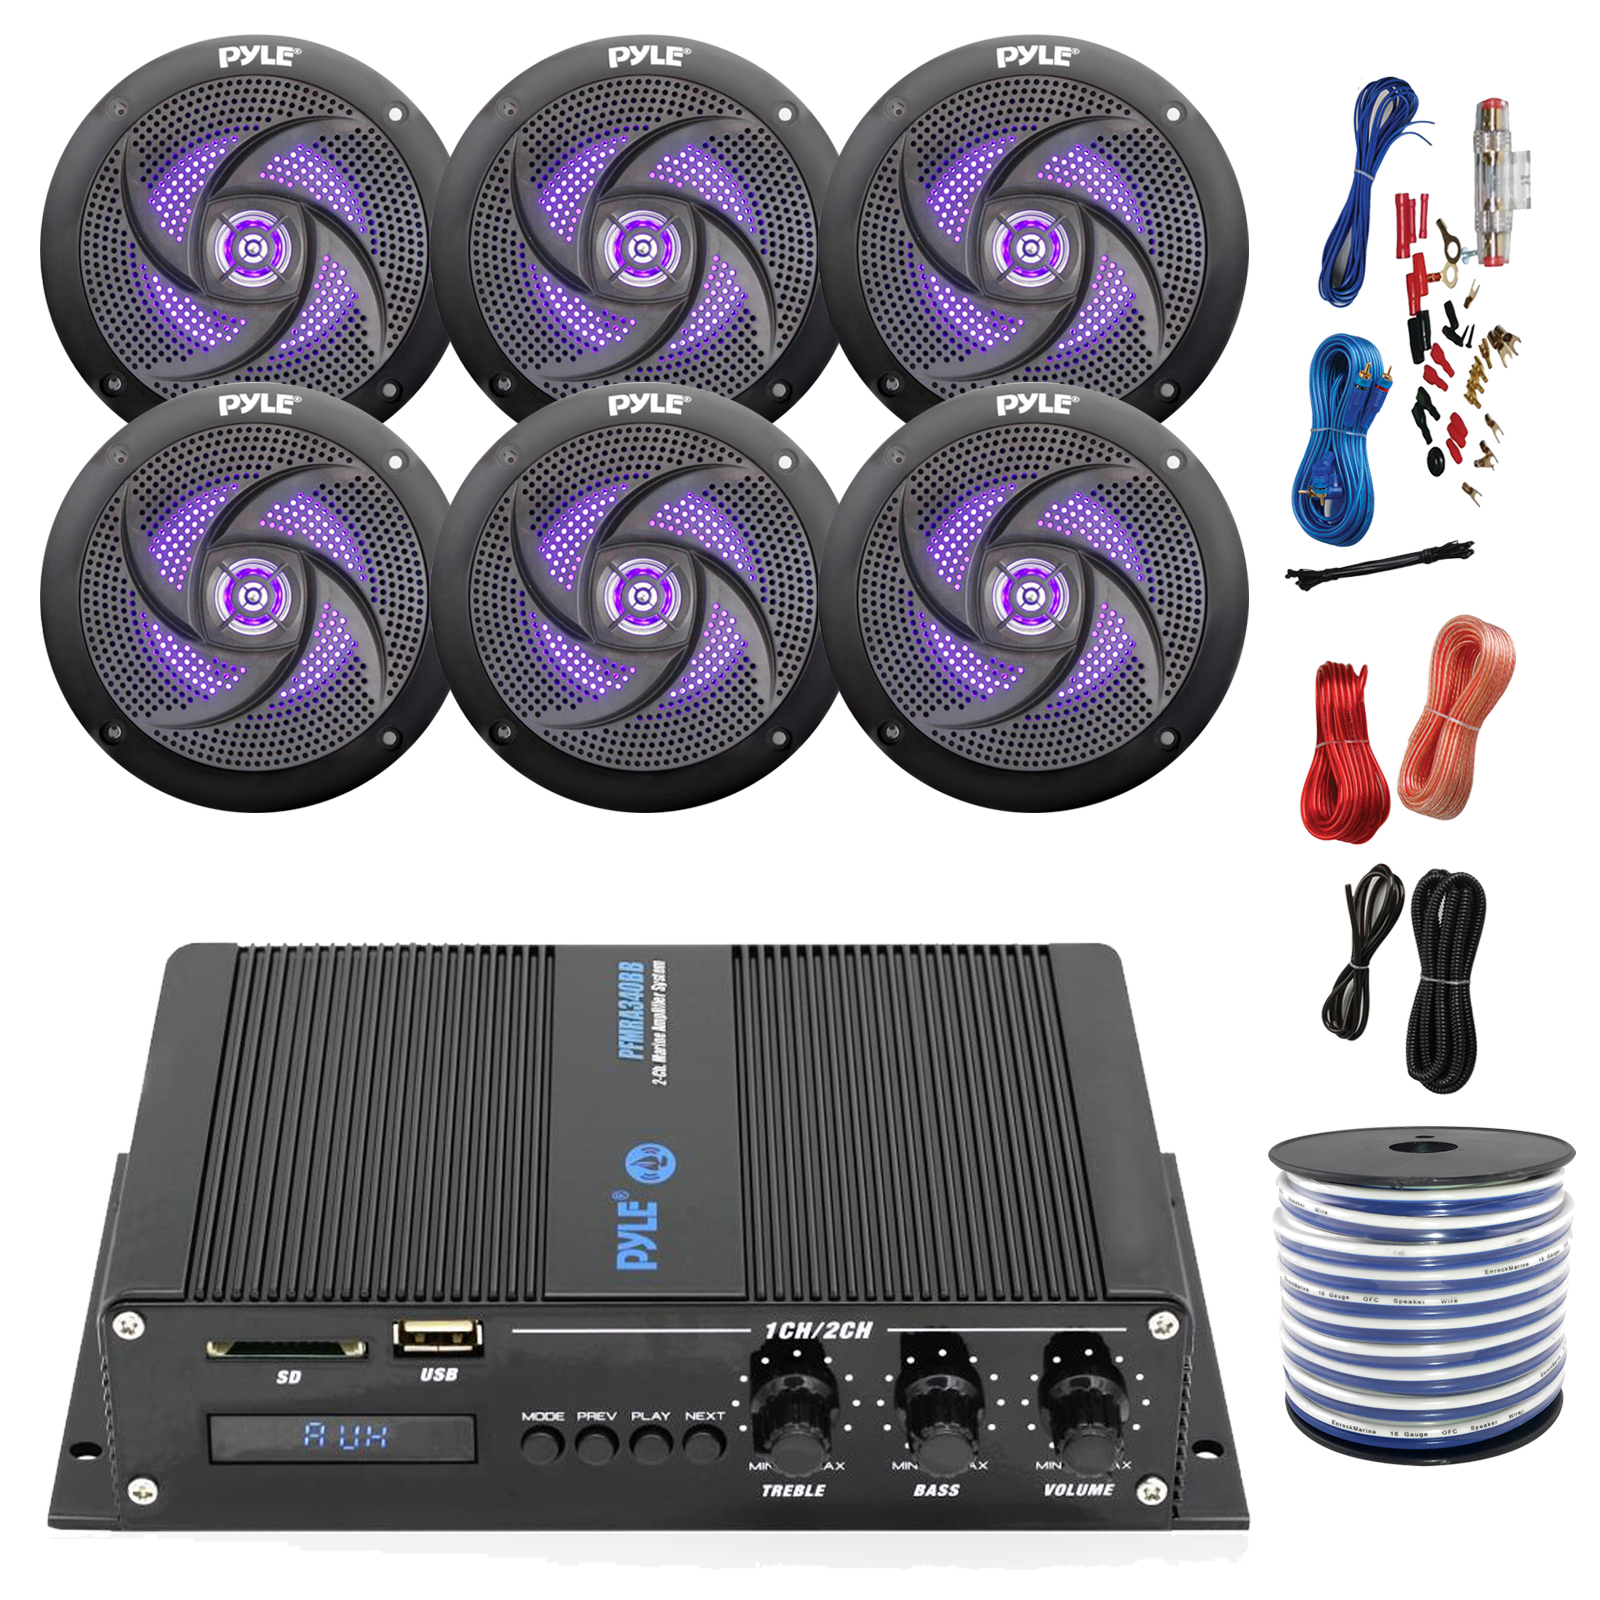 "Pyle Marine PFMRA640BB 6-Channel Bluetooth Black Amplifier, 6x Pyle 6.5"" LED Waterproof Weather Resistant Black Speakers, Amp Install Kit, 18-G 50 Ft Speaker Wire"